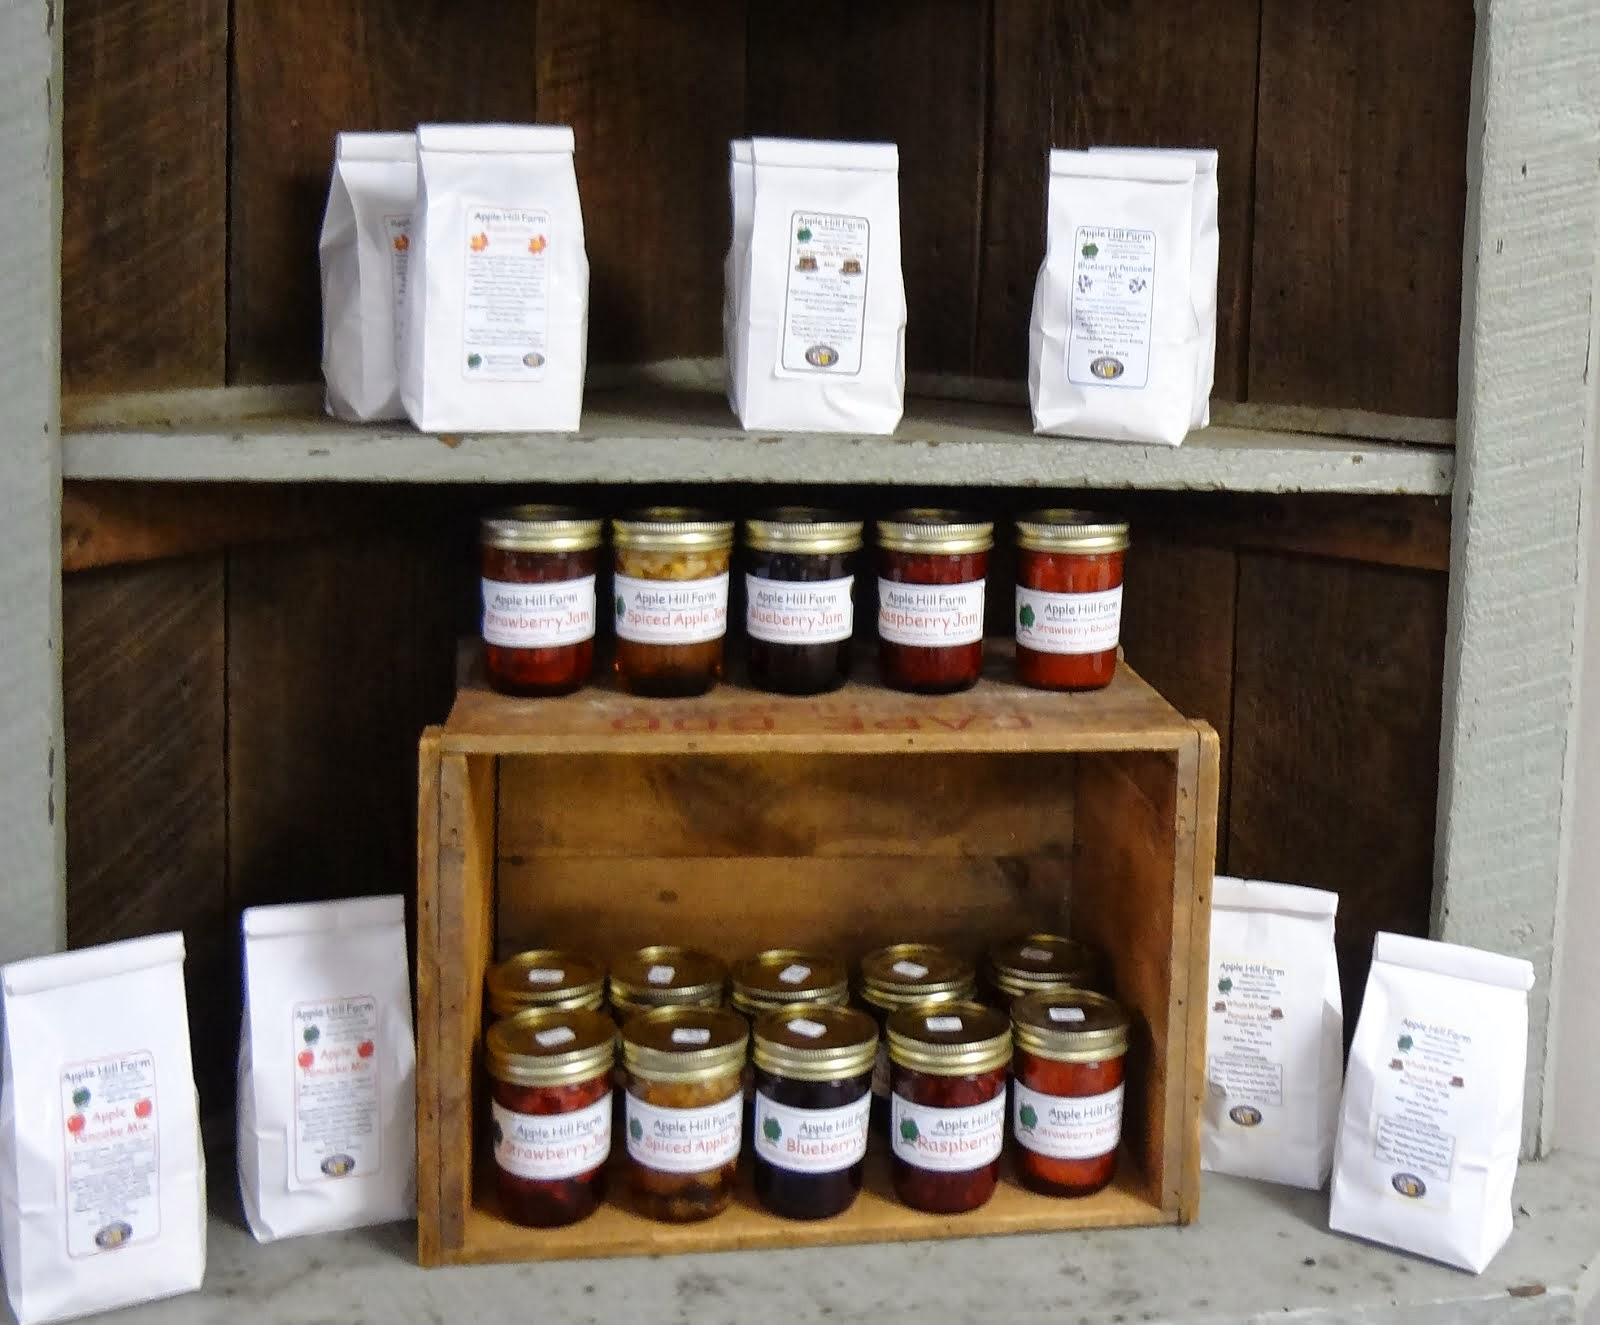 Apple Hill Farm Jams & Pancake Mixes